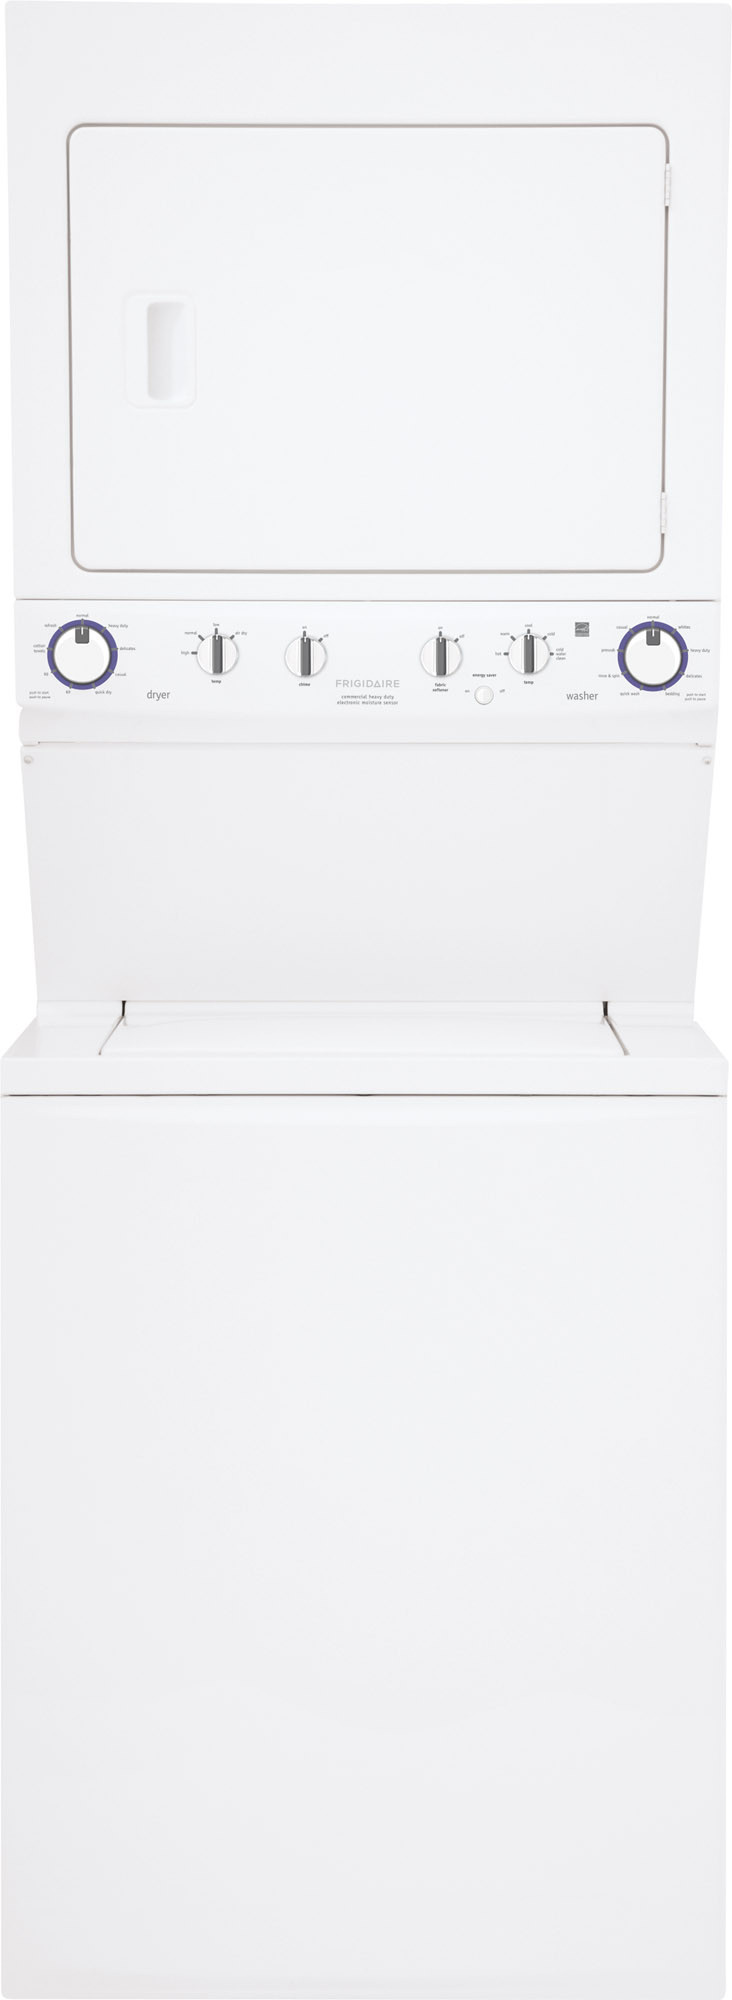 Frigidaire FFLE4033QW 27 Inch Electric Laundry Center with